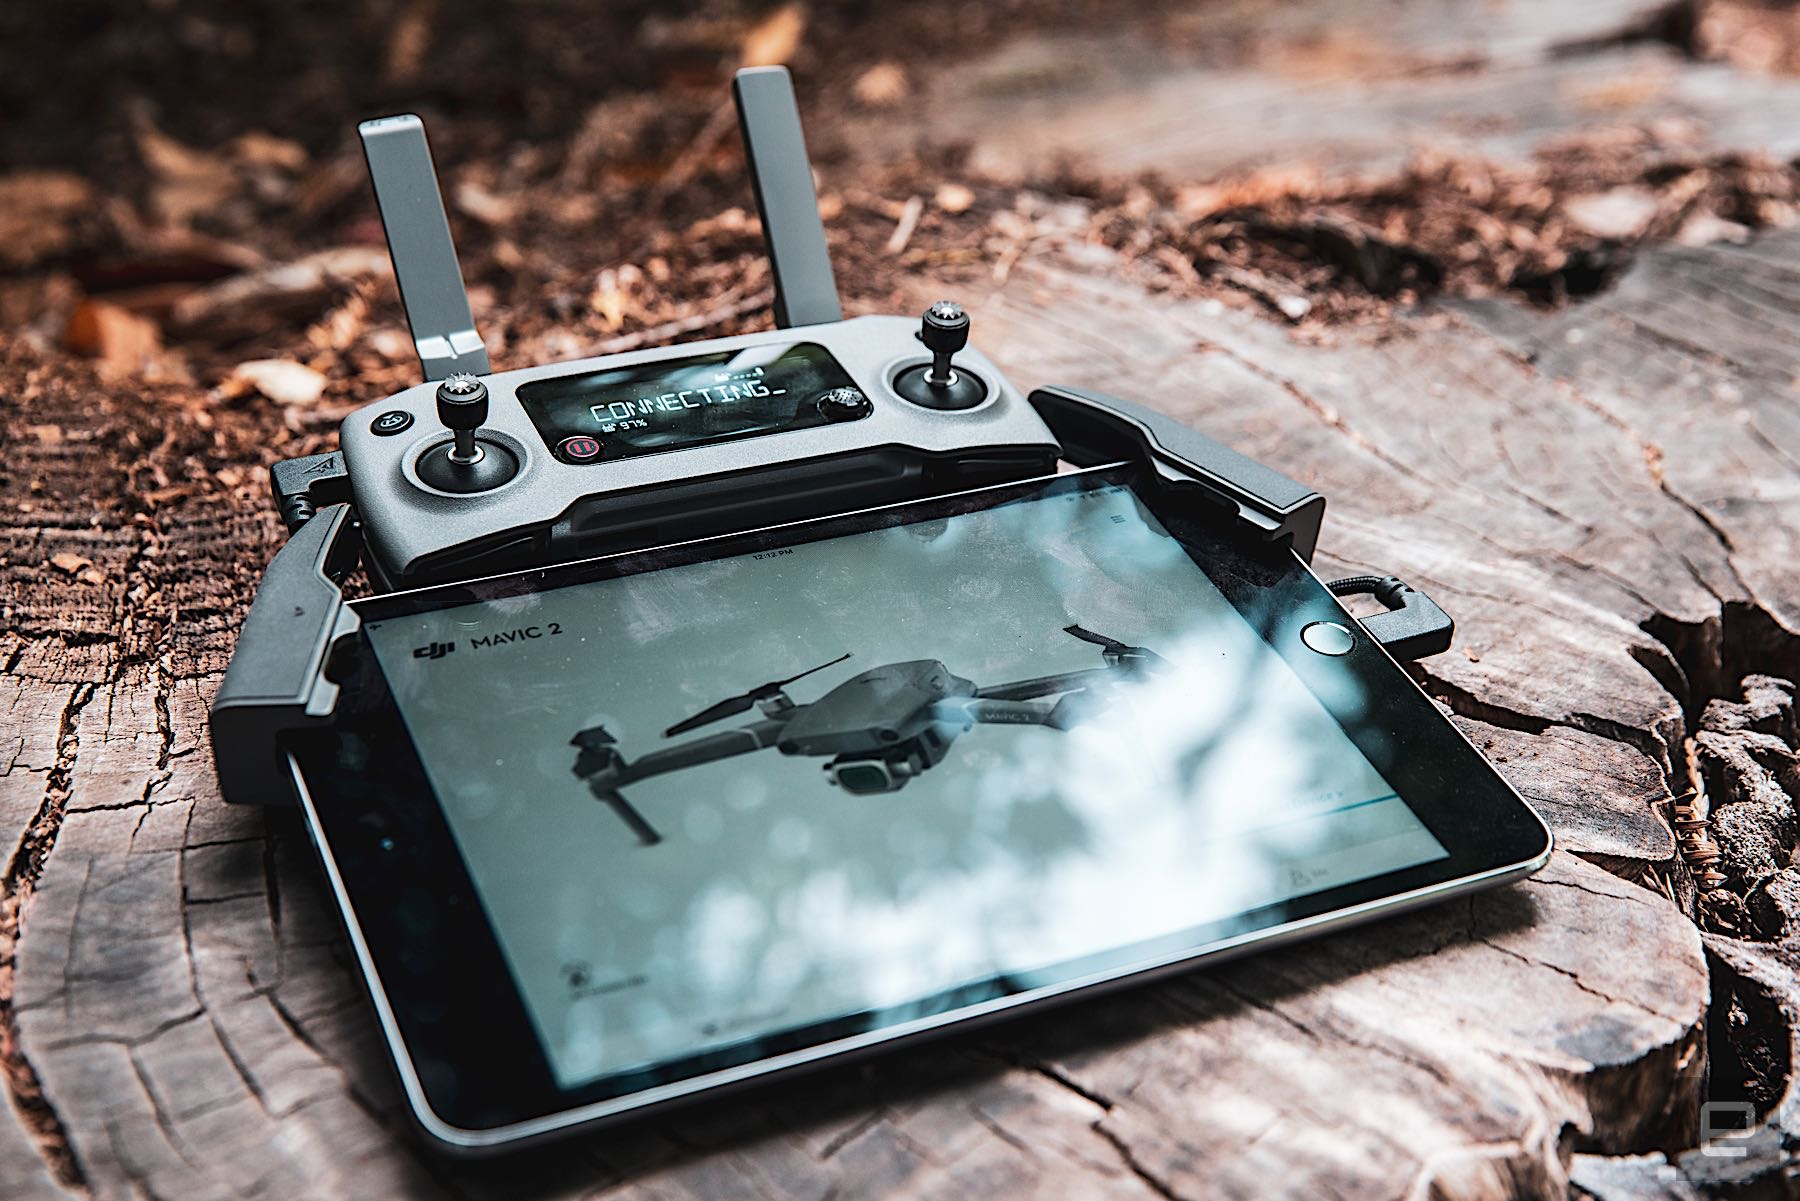 The Mavic 2 controller works great with an iPad mini, but you'll need a longer microUSB-to-lightning cable to connect them, the one that comes with the Mavic won't reach.